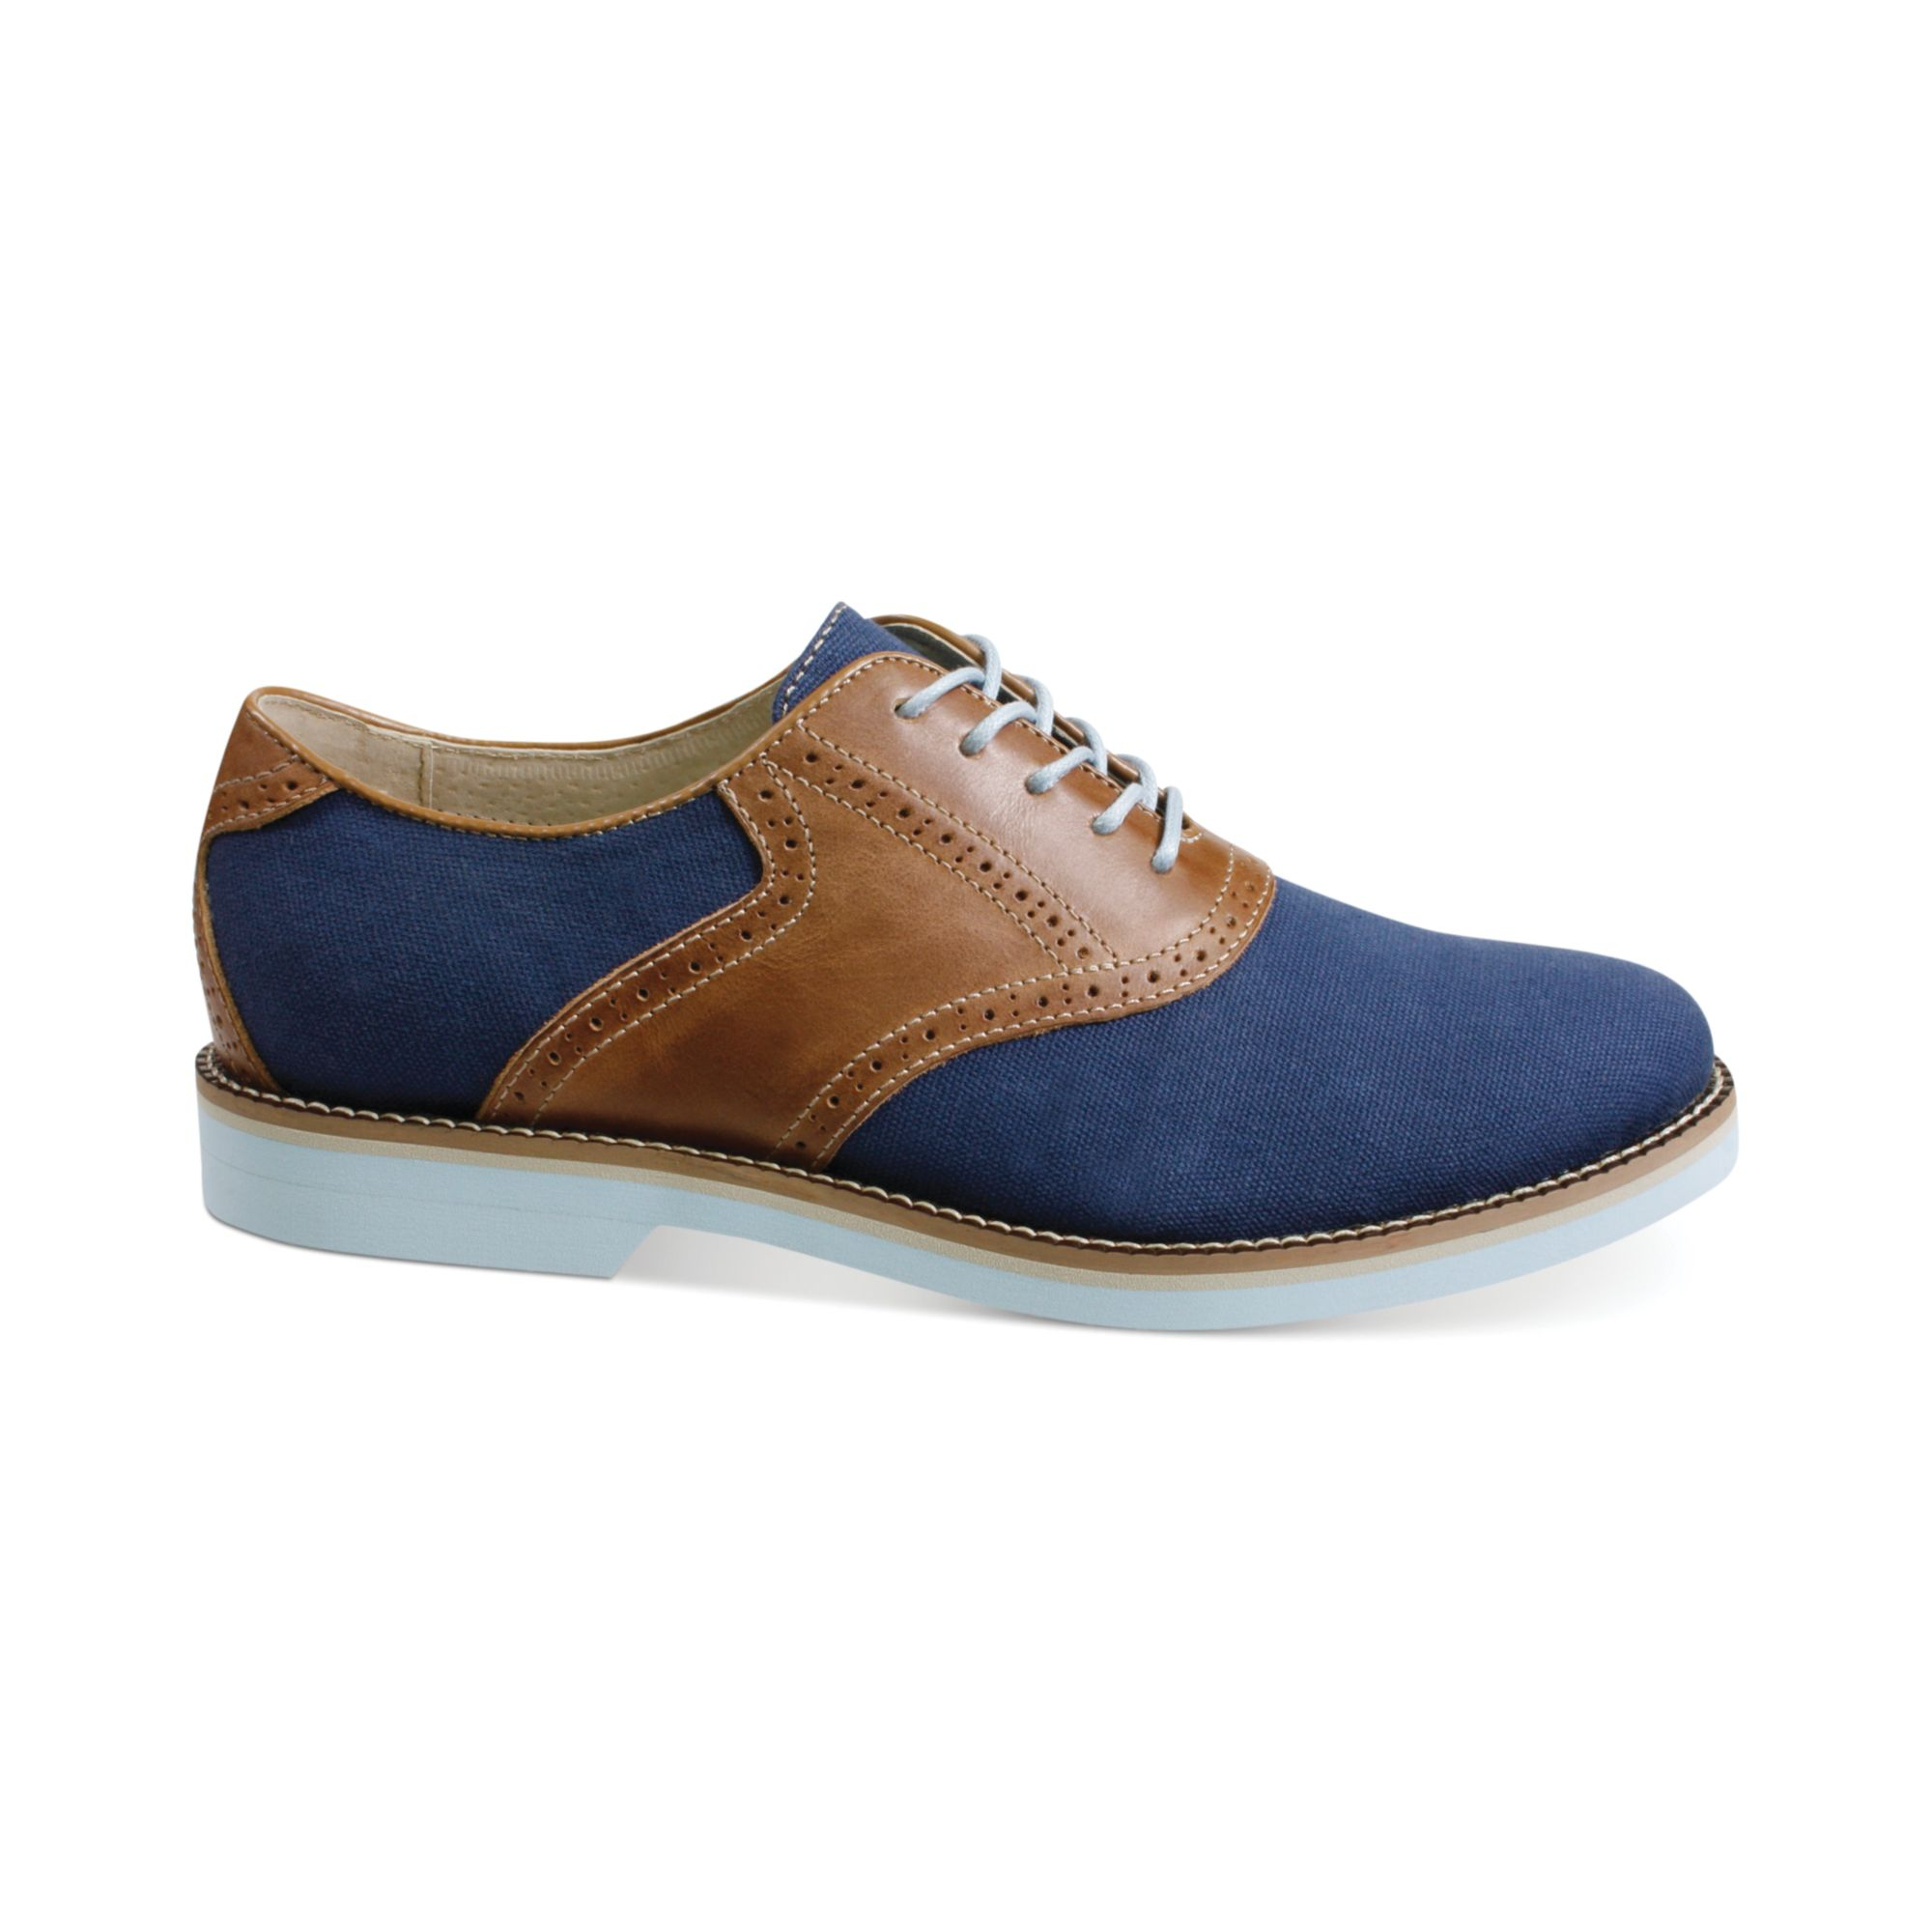 lyst gh bass amp co carson canvas oxfords in blue for men